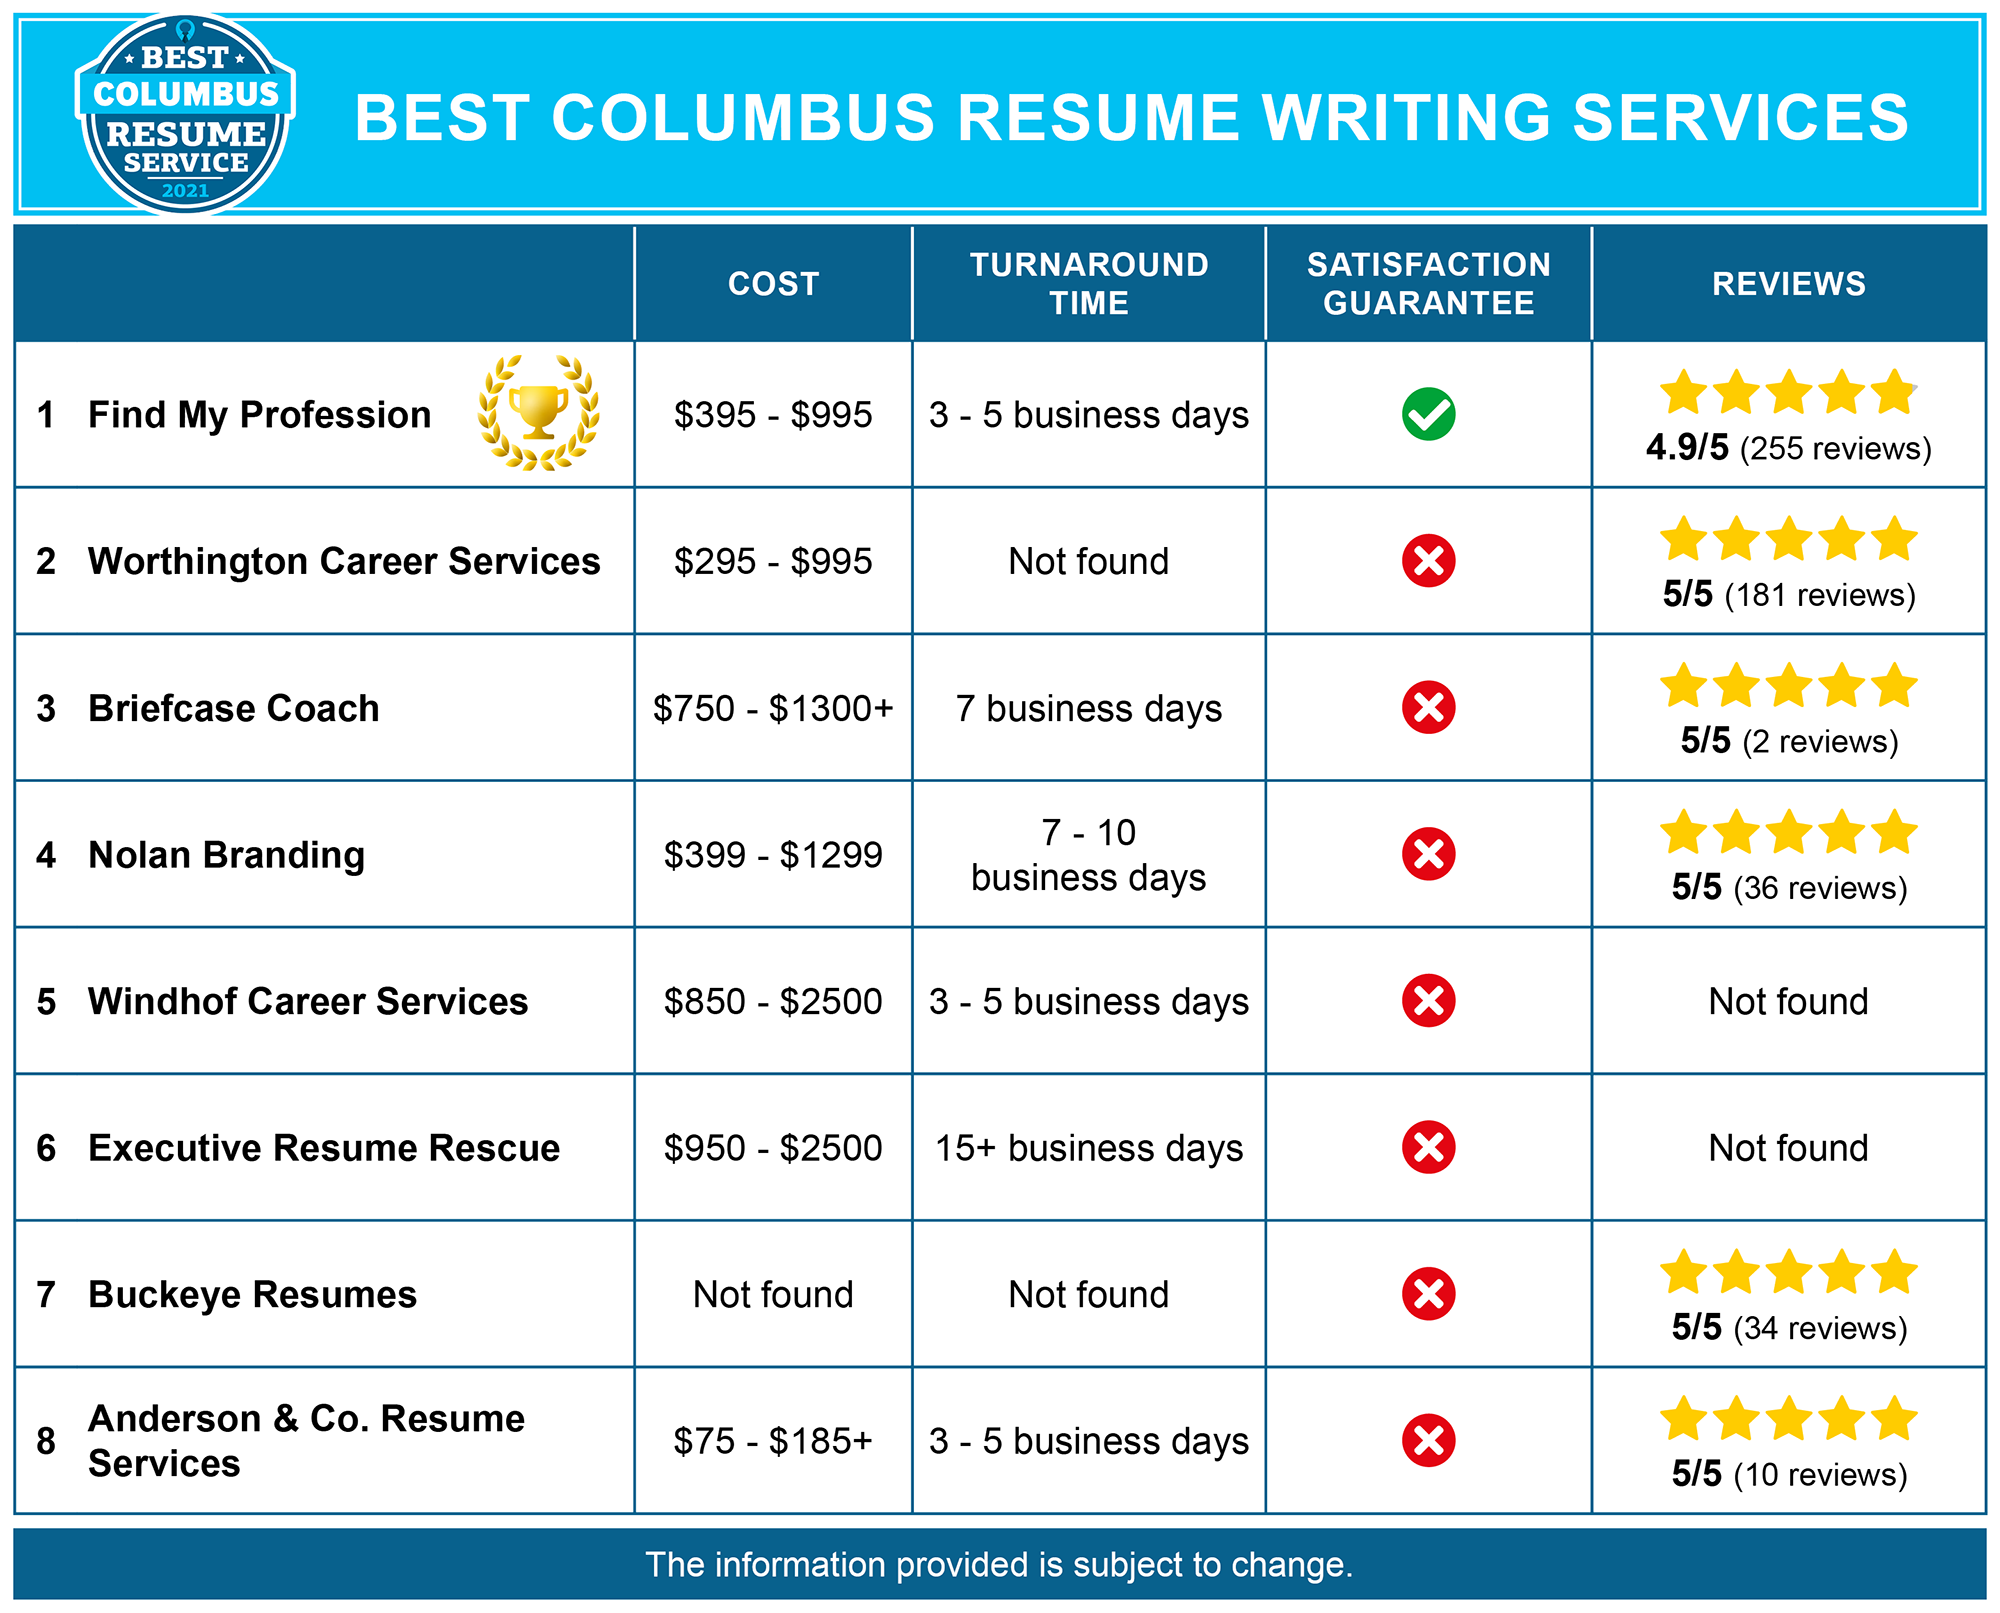 Best Columbus Resume Writing Services